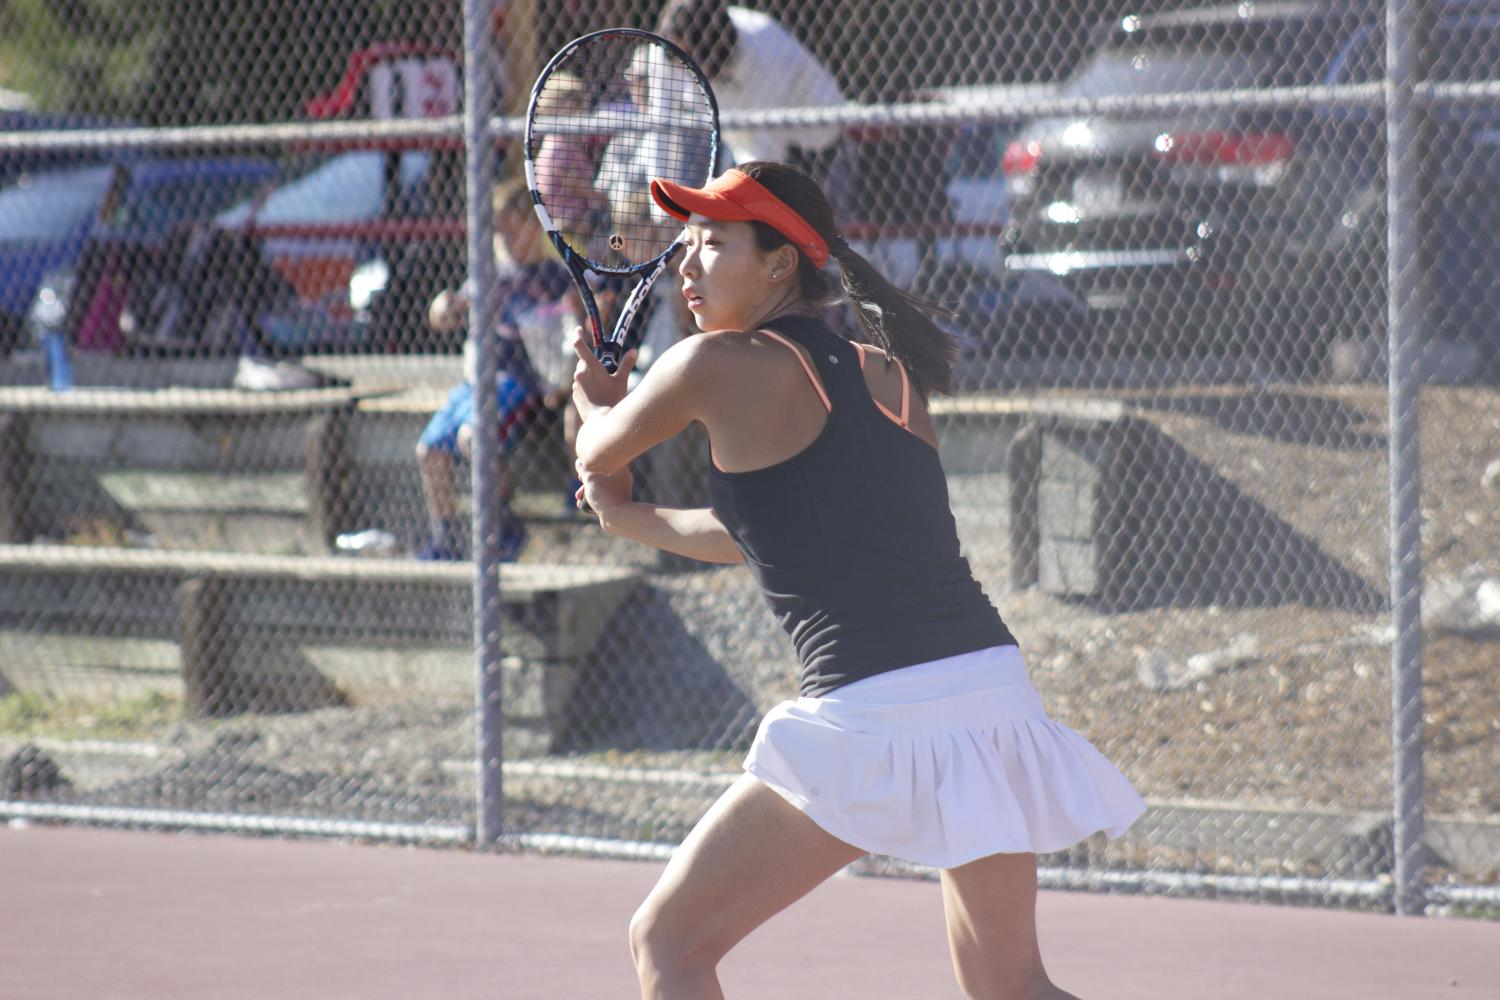 Senior Msay Zhu playing in the match against Monte Vista.